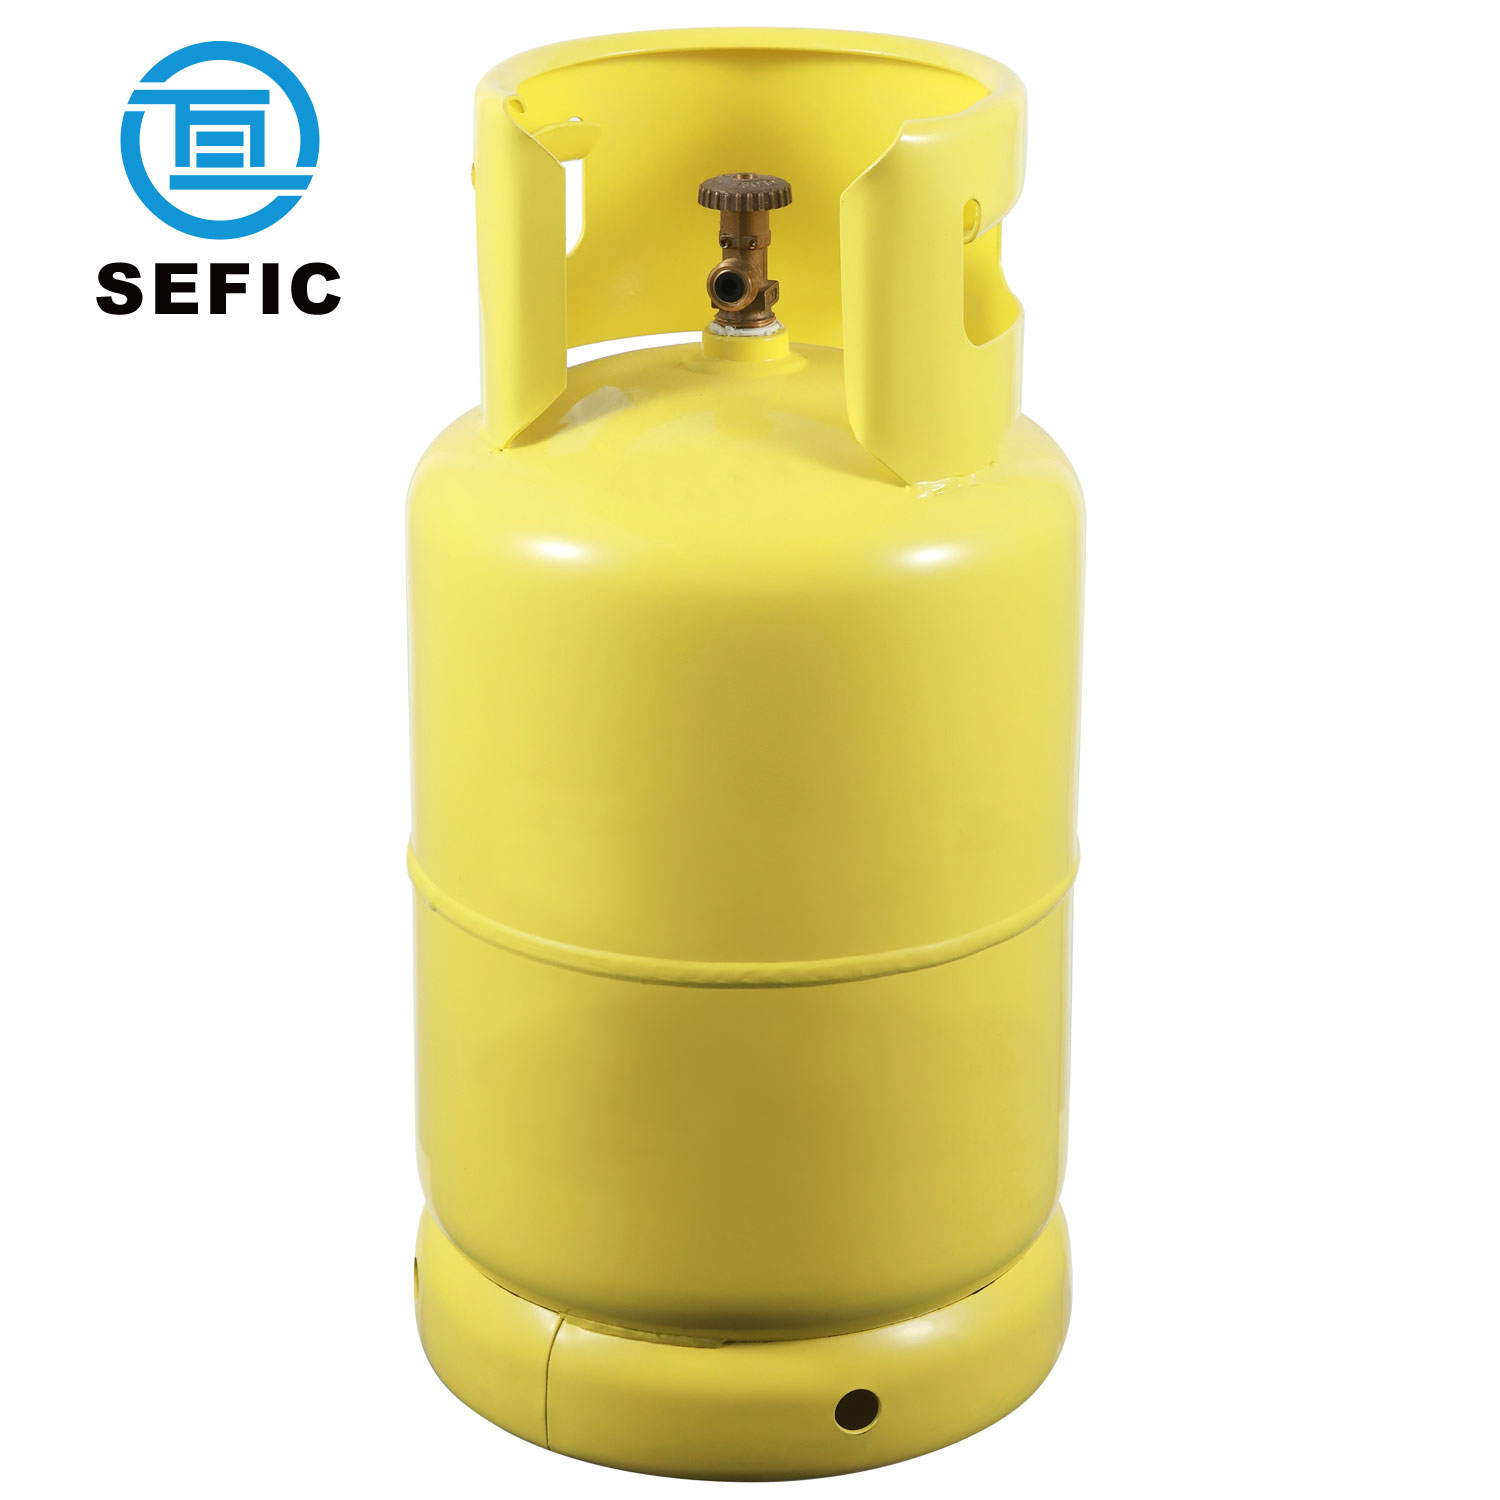 SEFIC 2kg/3kg/5kg/6kg/10kg/12.5kg/15kg/20kg/25kg Refillable Filling LPG Gas <strong>Cylinder</strong> Prices Cooking Gas <strong>Cylinder</strong> For Home Use